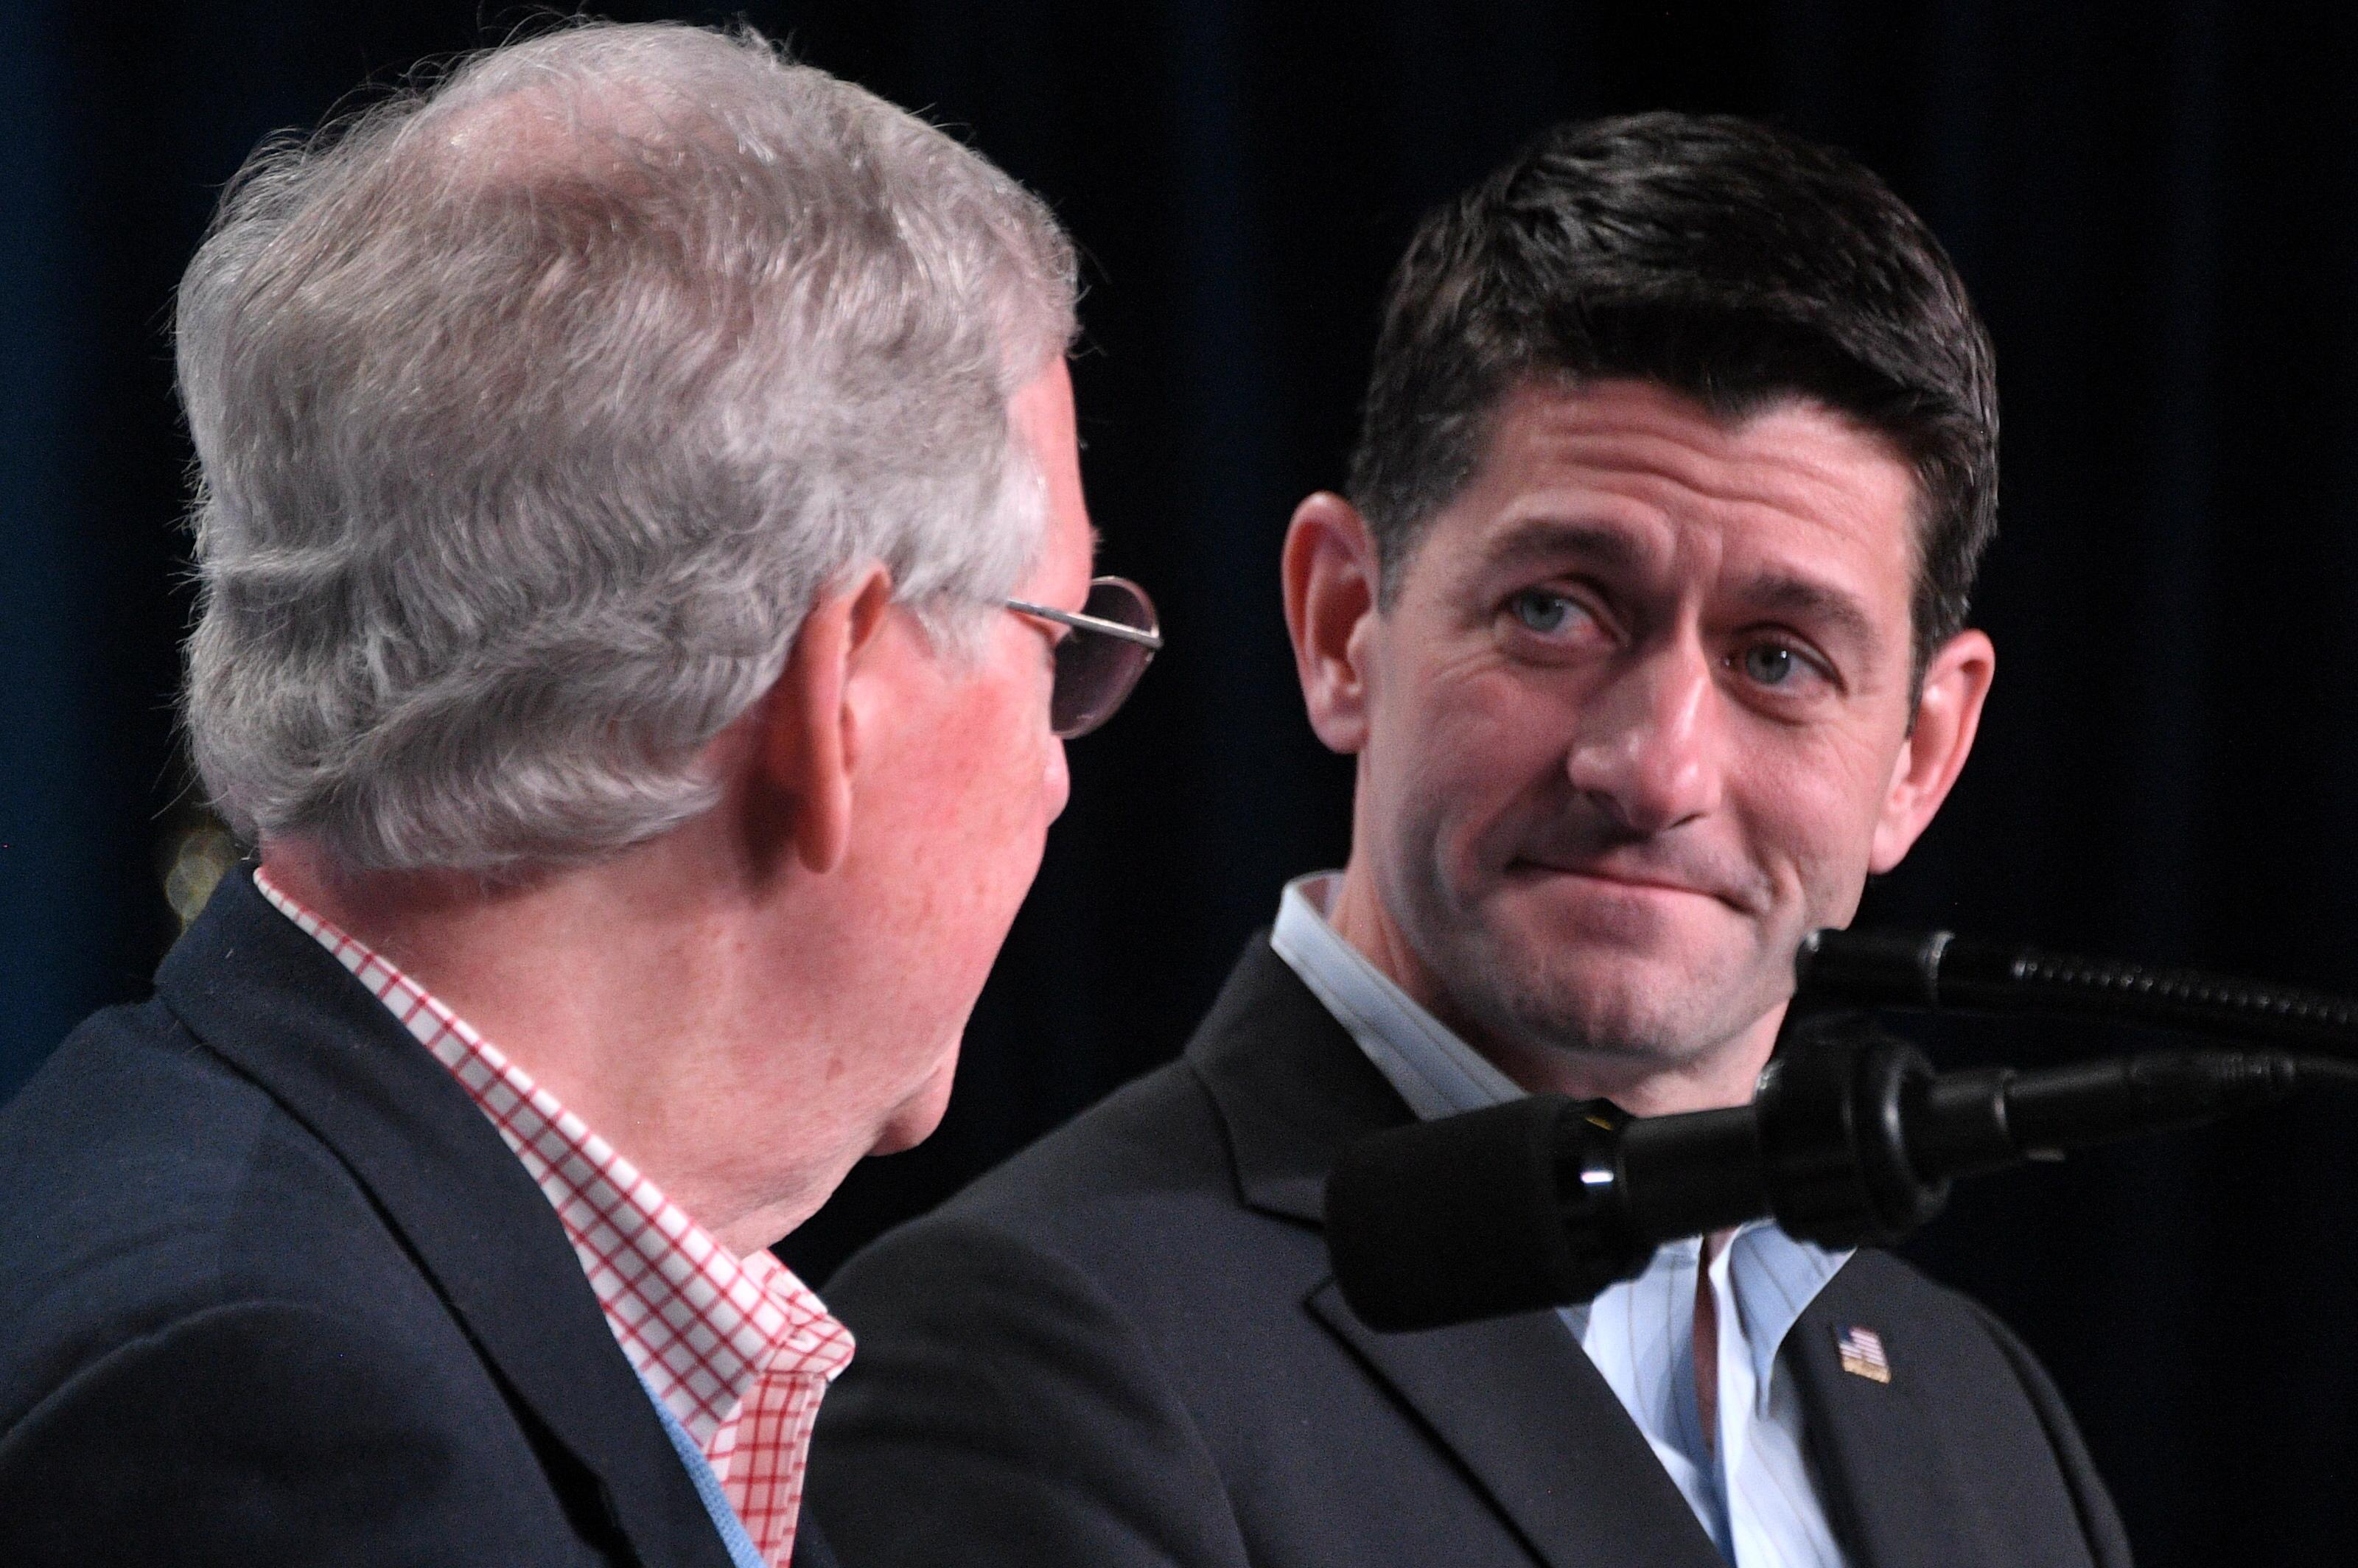 House Speaker Paul Ryan (R) and Senate majority leader Mitch McConnell (L) deliver a speech in White Sulphur Springs, West Viriginia during the Republican party retreat on February 01, 20108.          / AFP PHOTO / JIM WATSON        (Photo credit should read JIM WATSON/AFP/Getty Images)